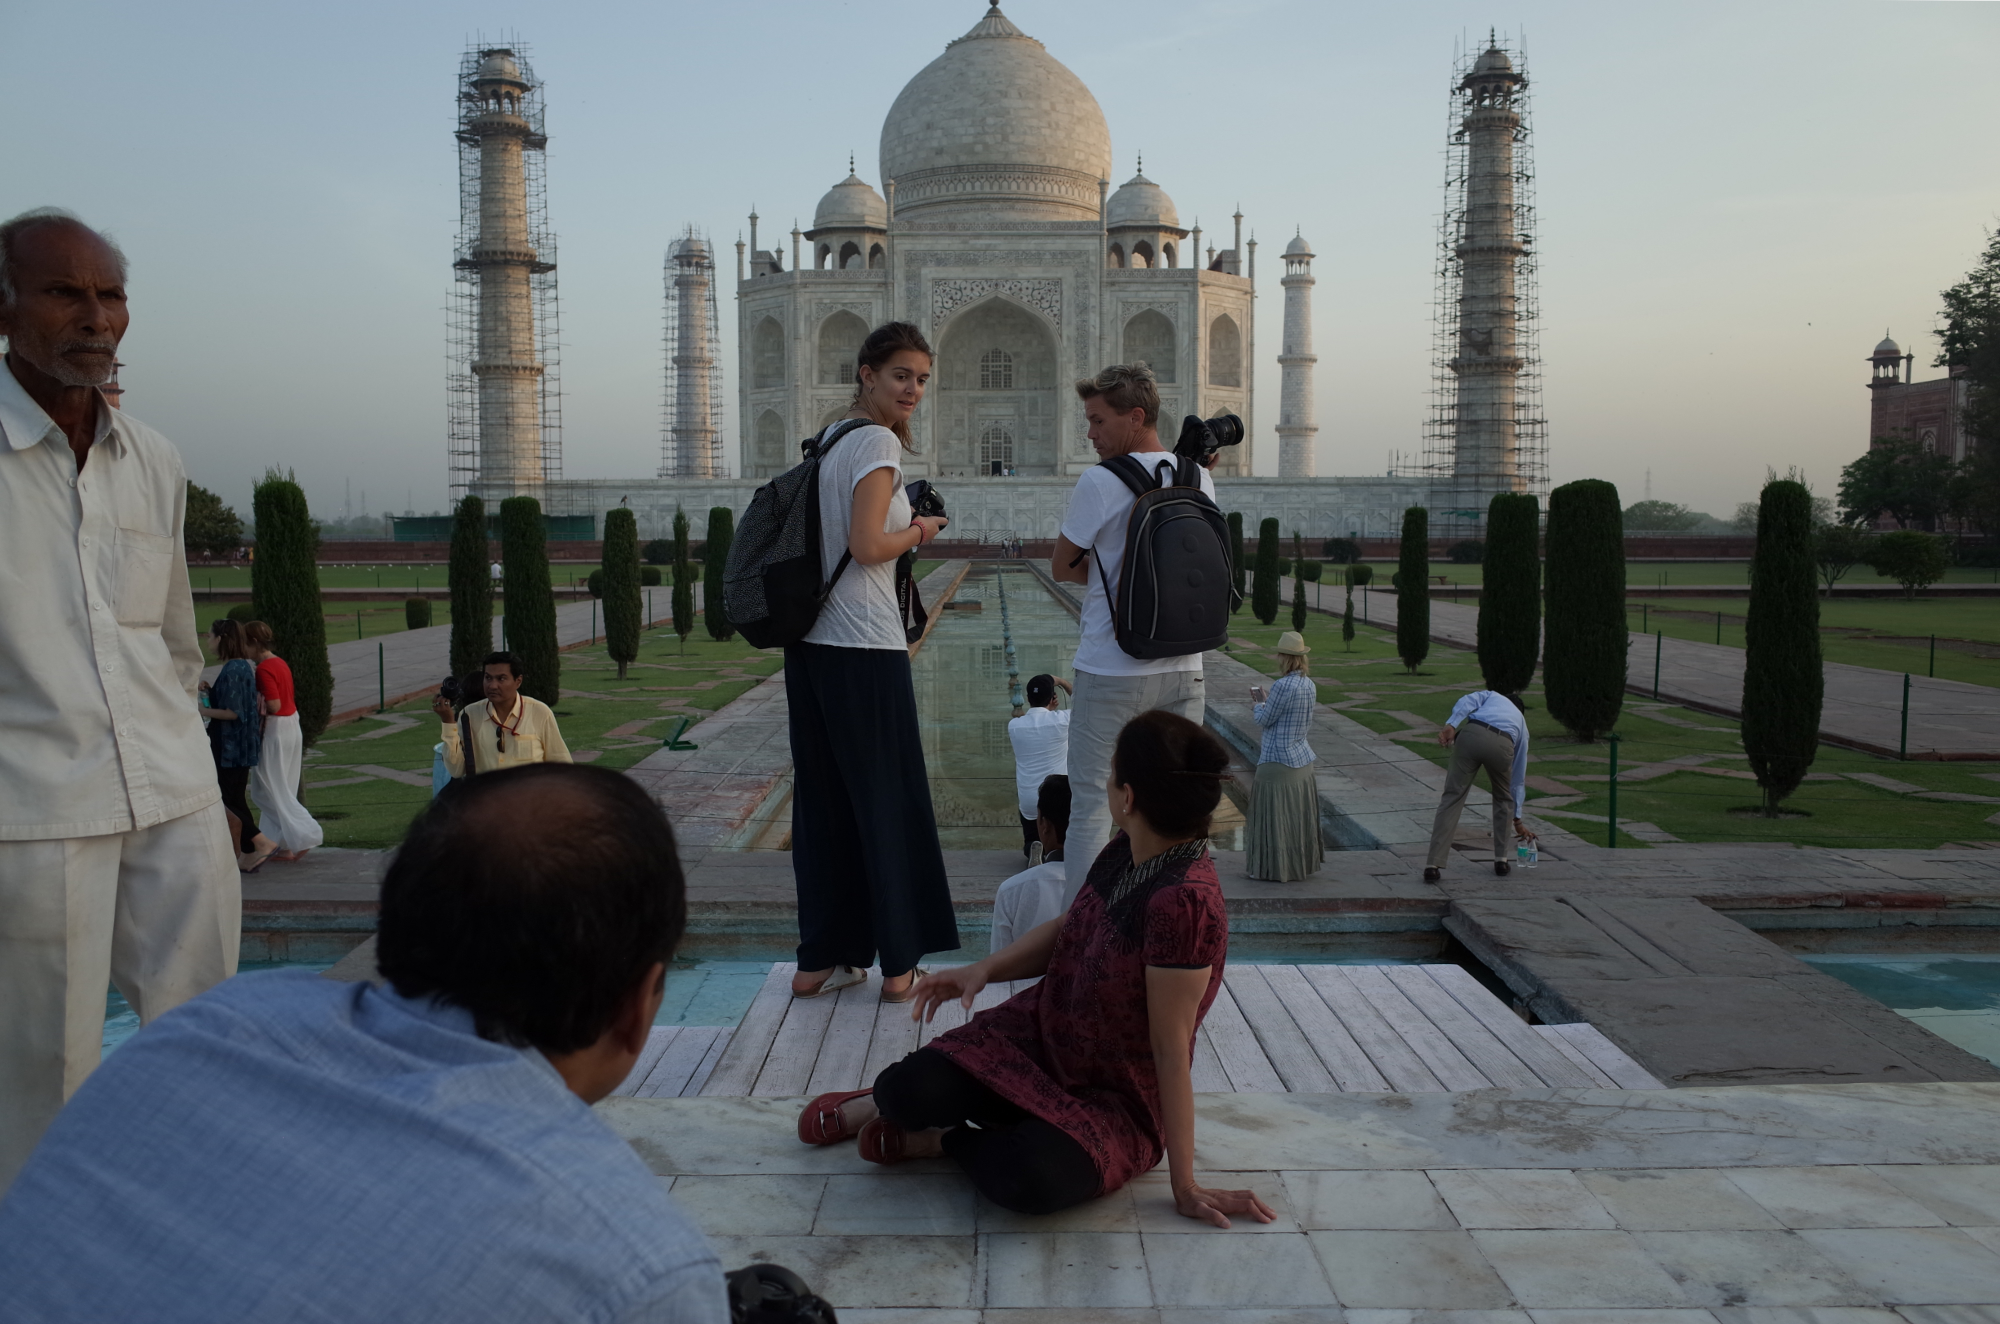 Exchanging frustrated glances, tourists hustle for the best spot to photograph the Taj Mahal at sunrise. Photo By: Sarah Tesla